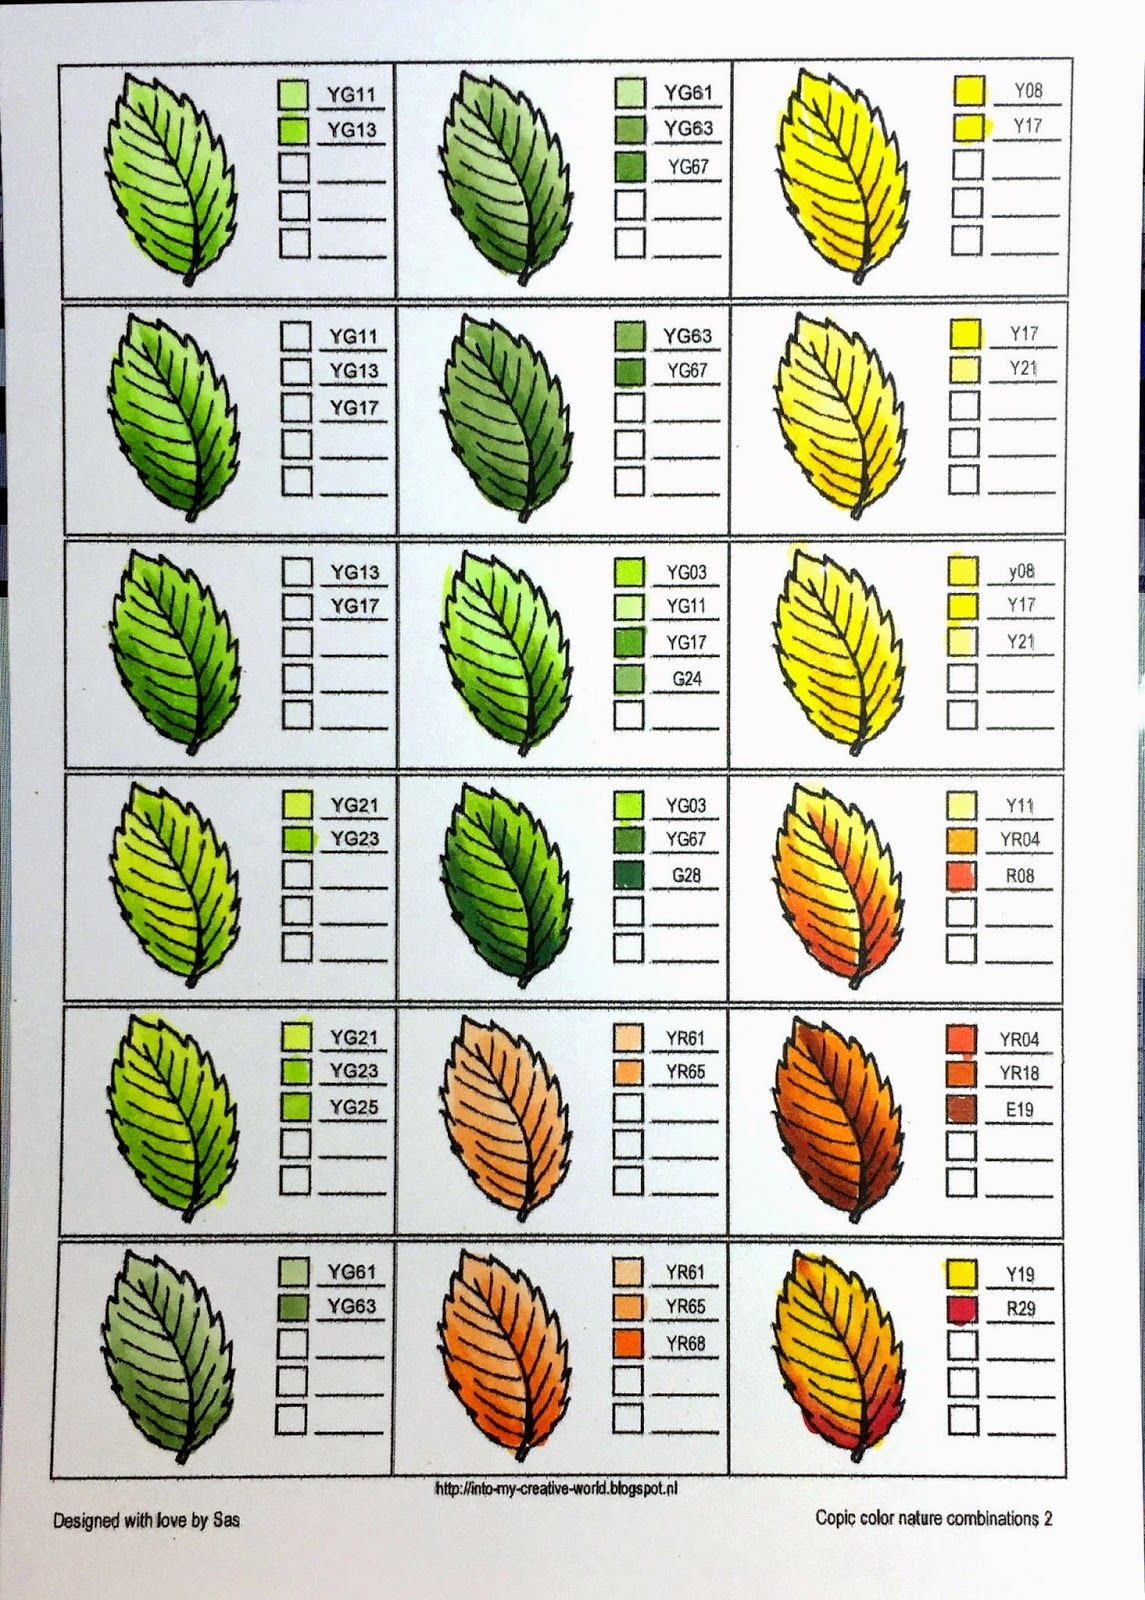 Coloring nature with copics leaves copic coloring